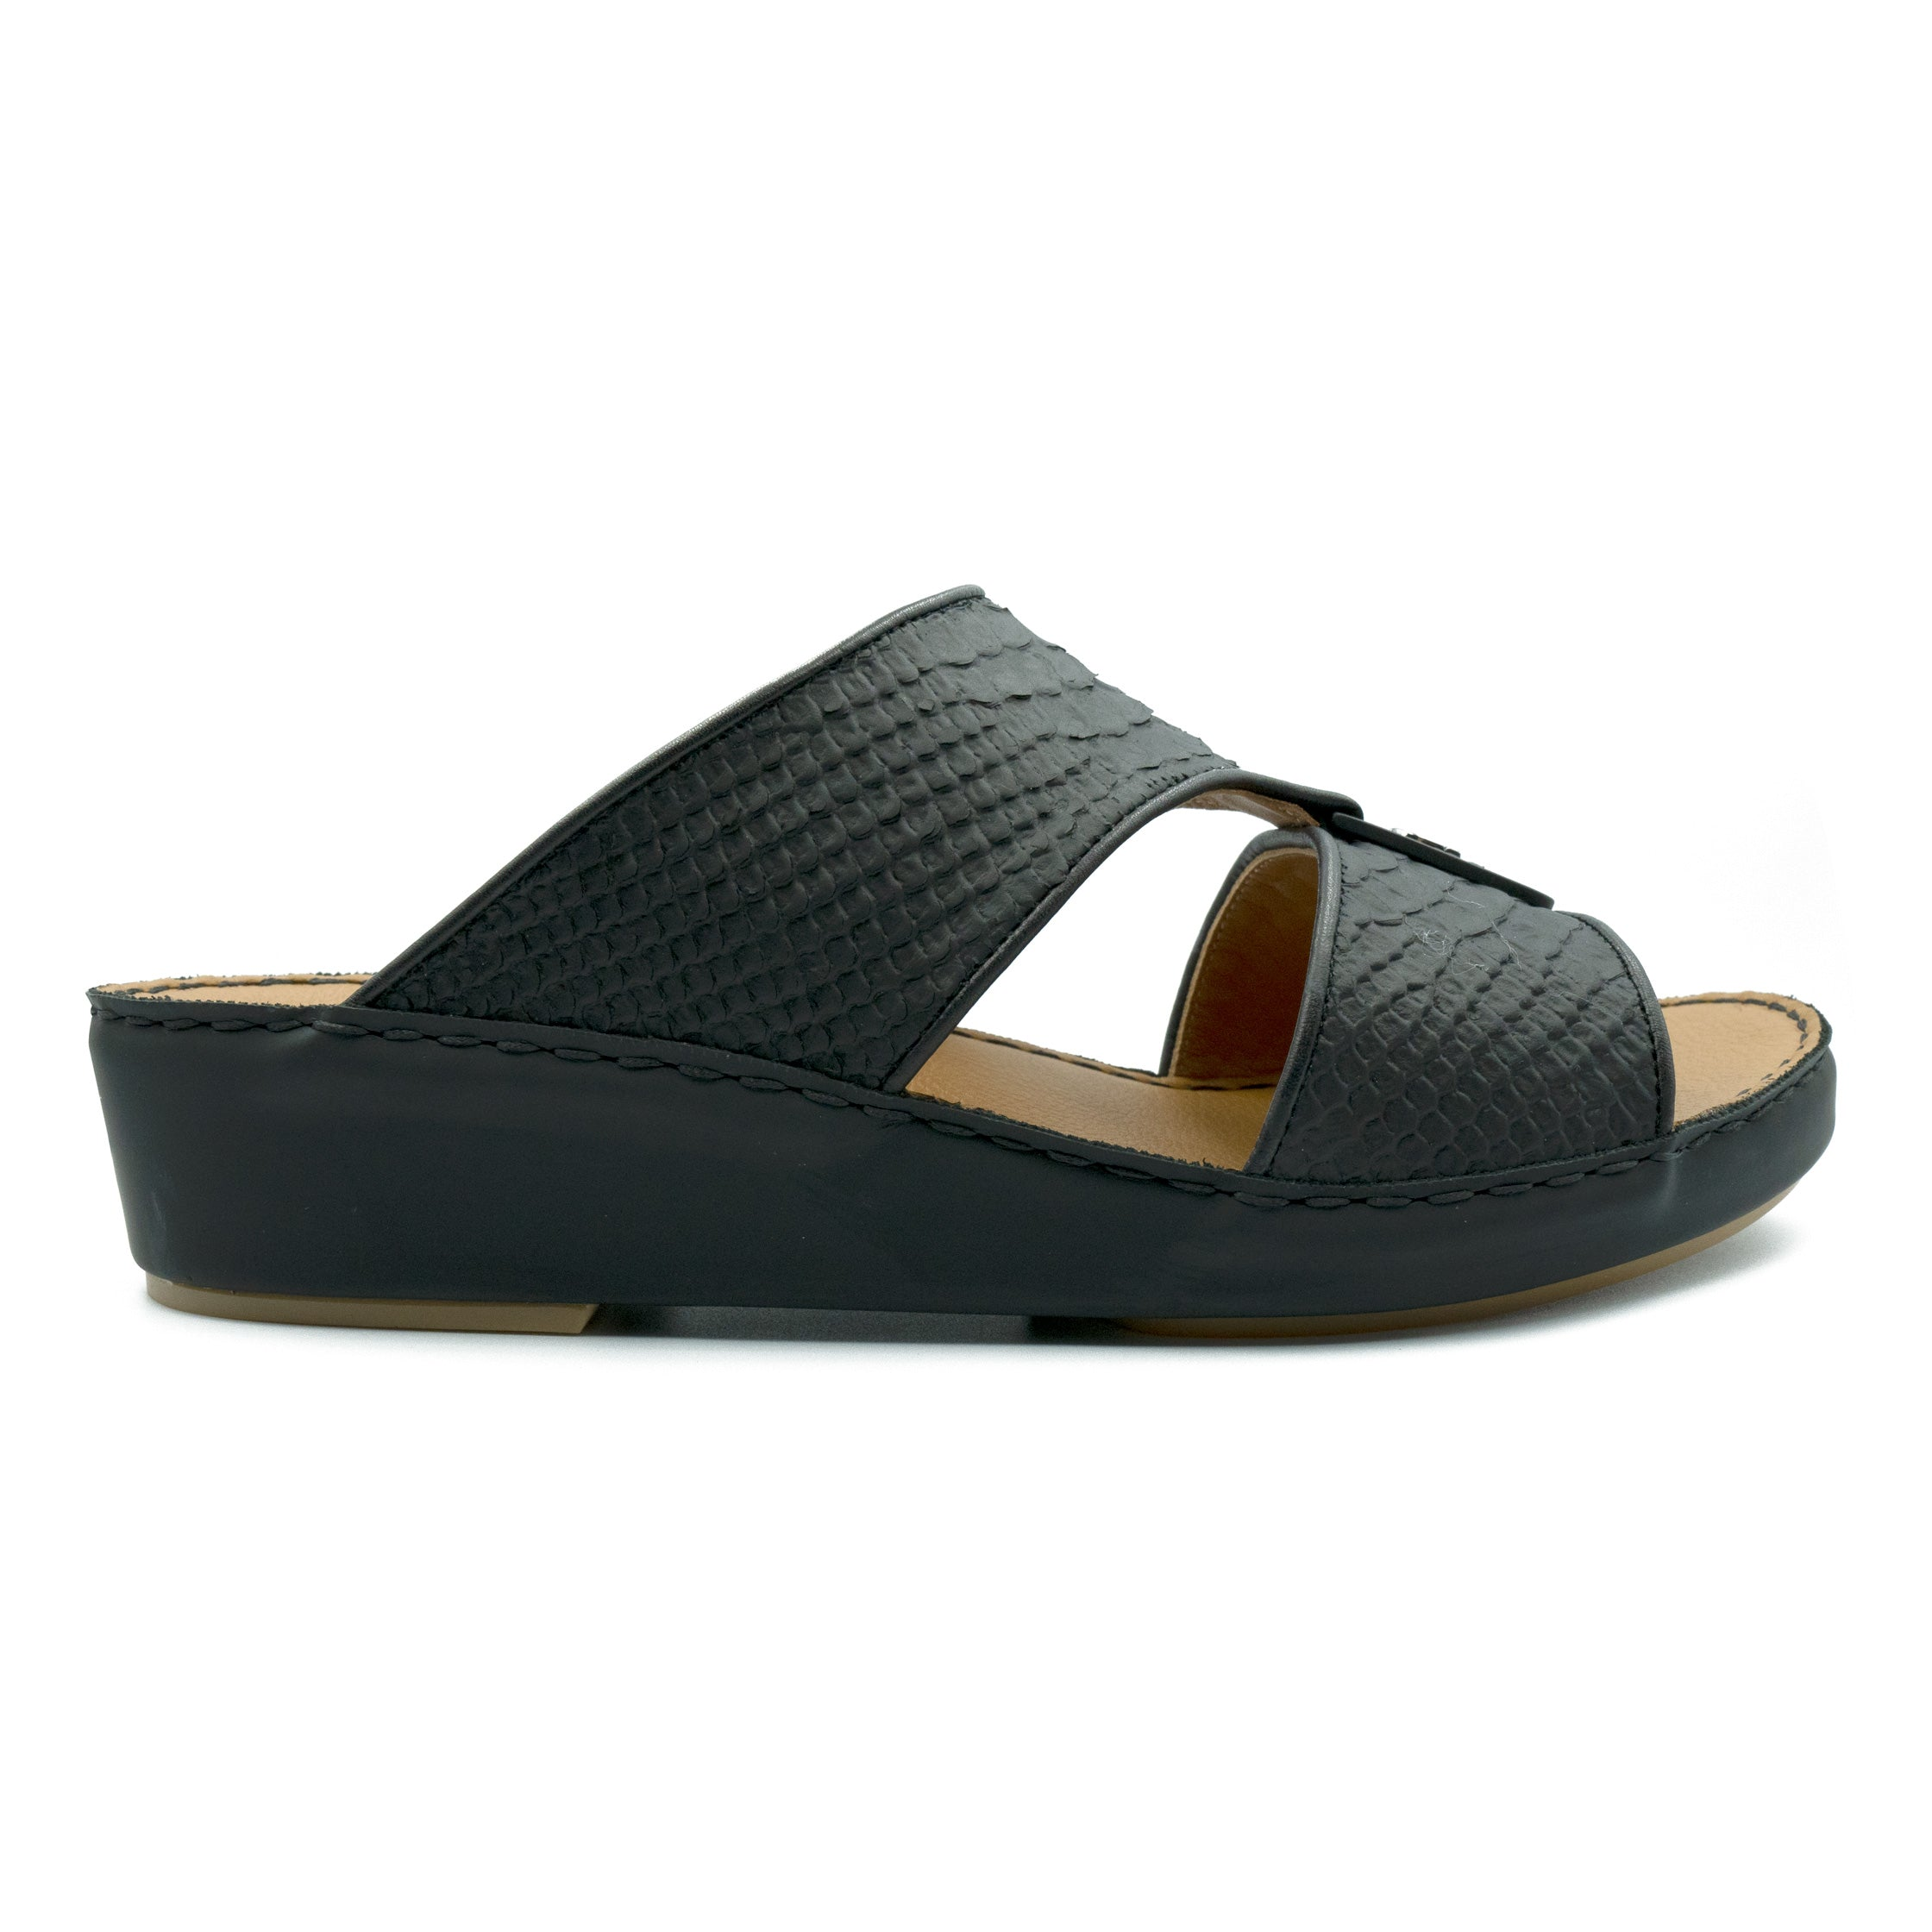 Black F Pitone (317-88) Arabic Sandals by F